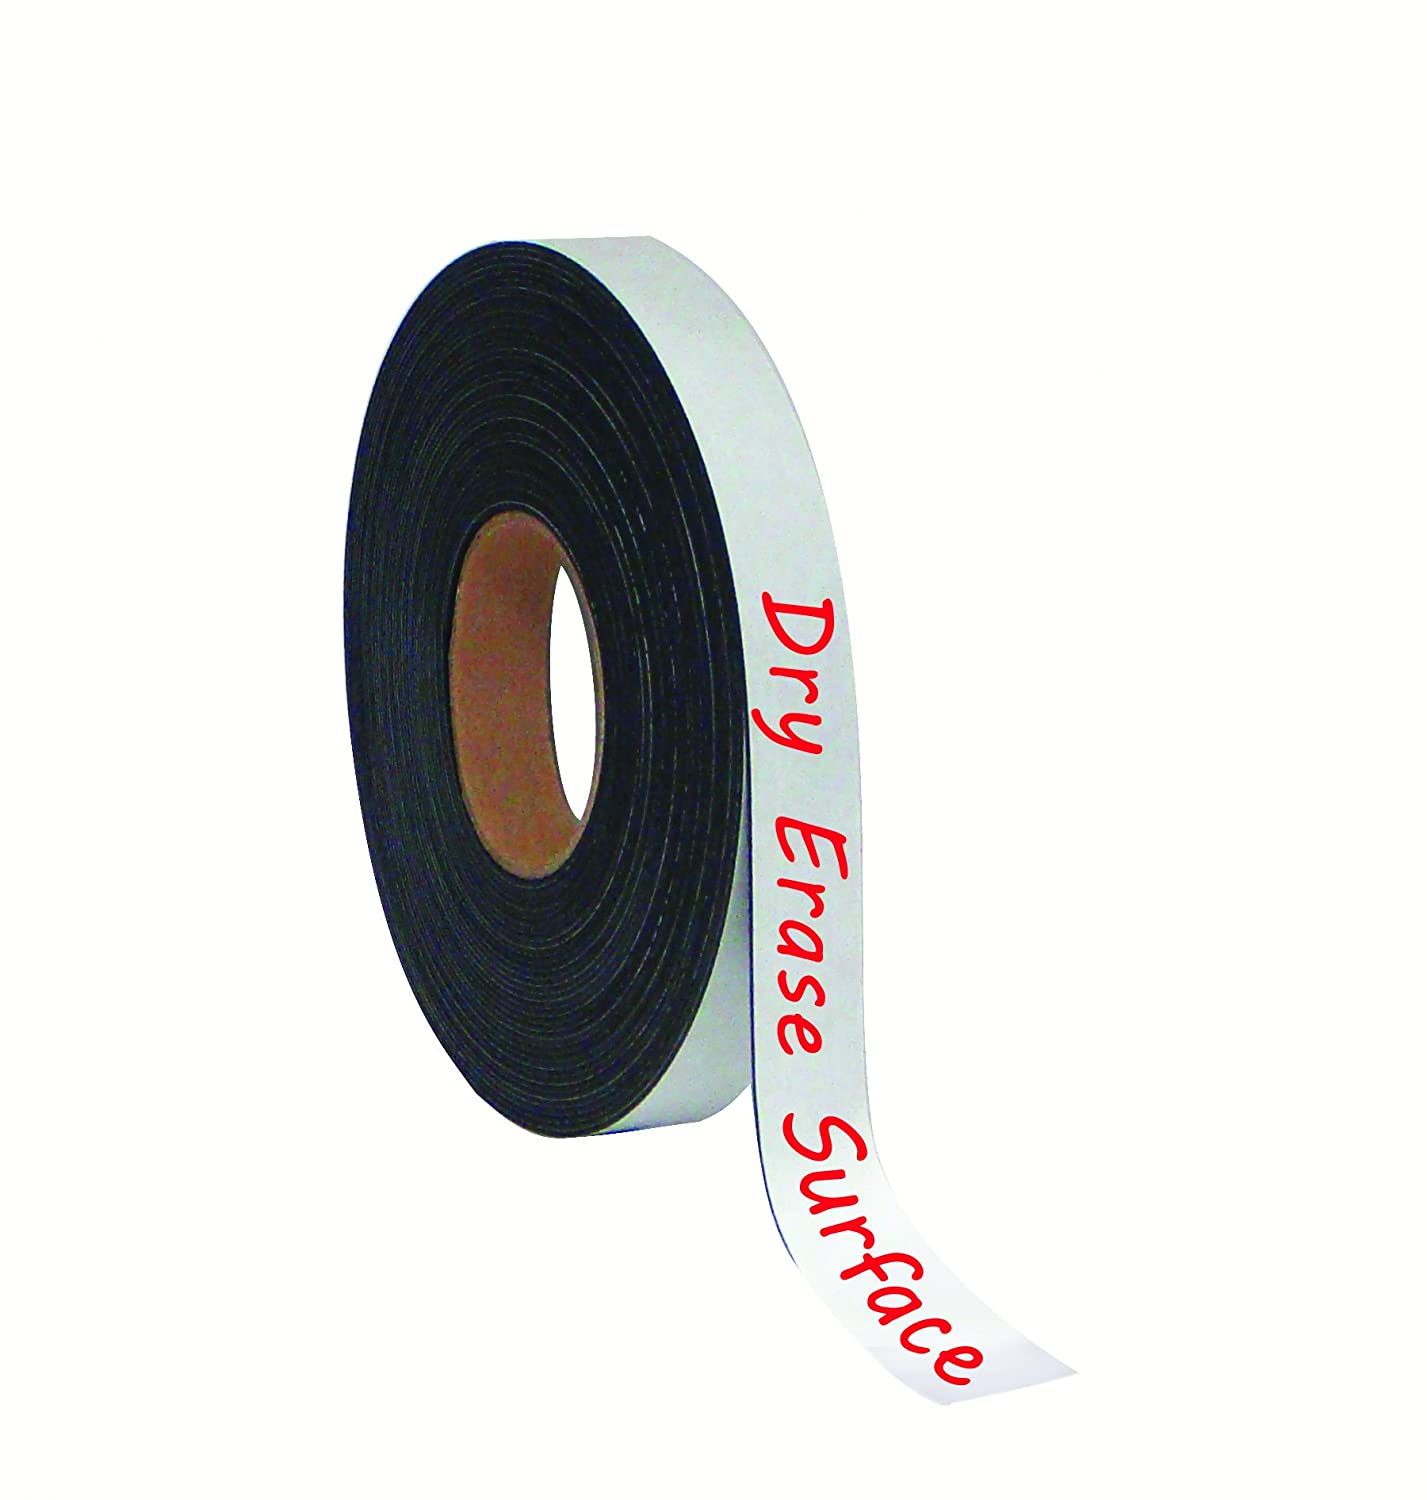 MasterVision Tape Roll Magnetic Dry Erase, 3' x 50' White